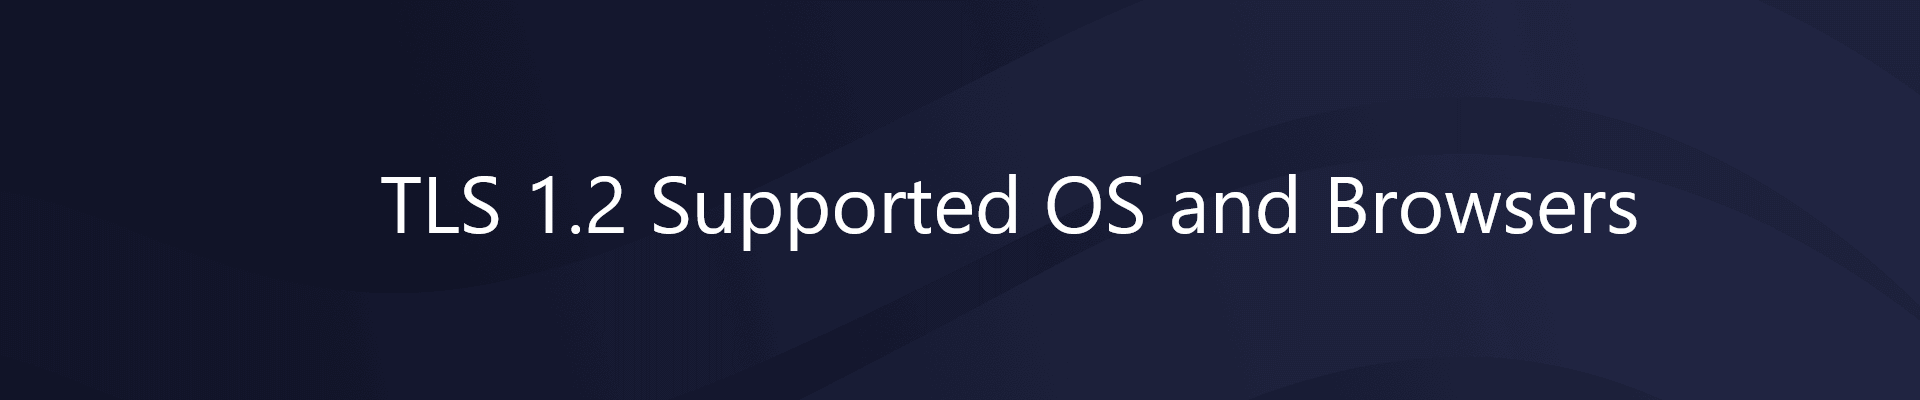 TLS 1.2 Supported OS and Browsers